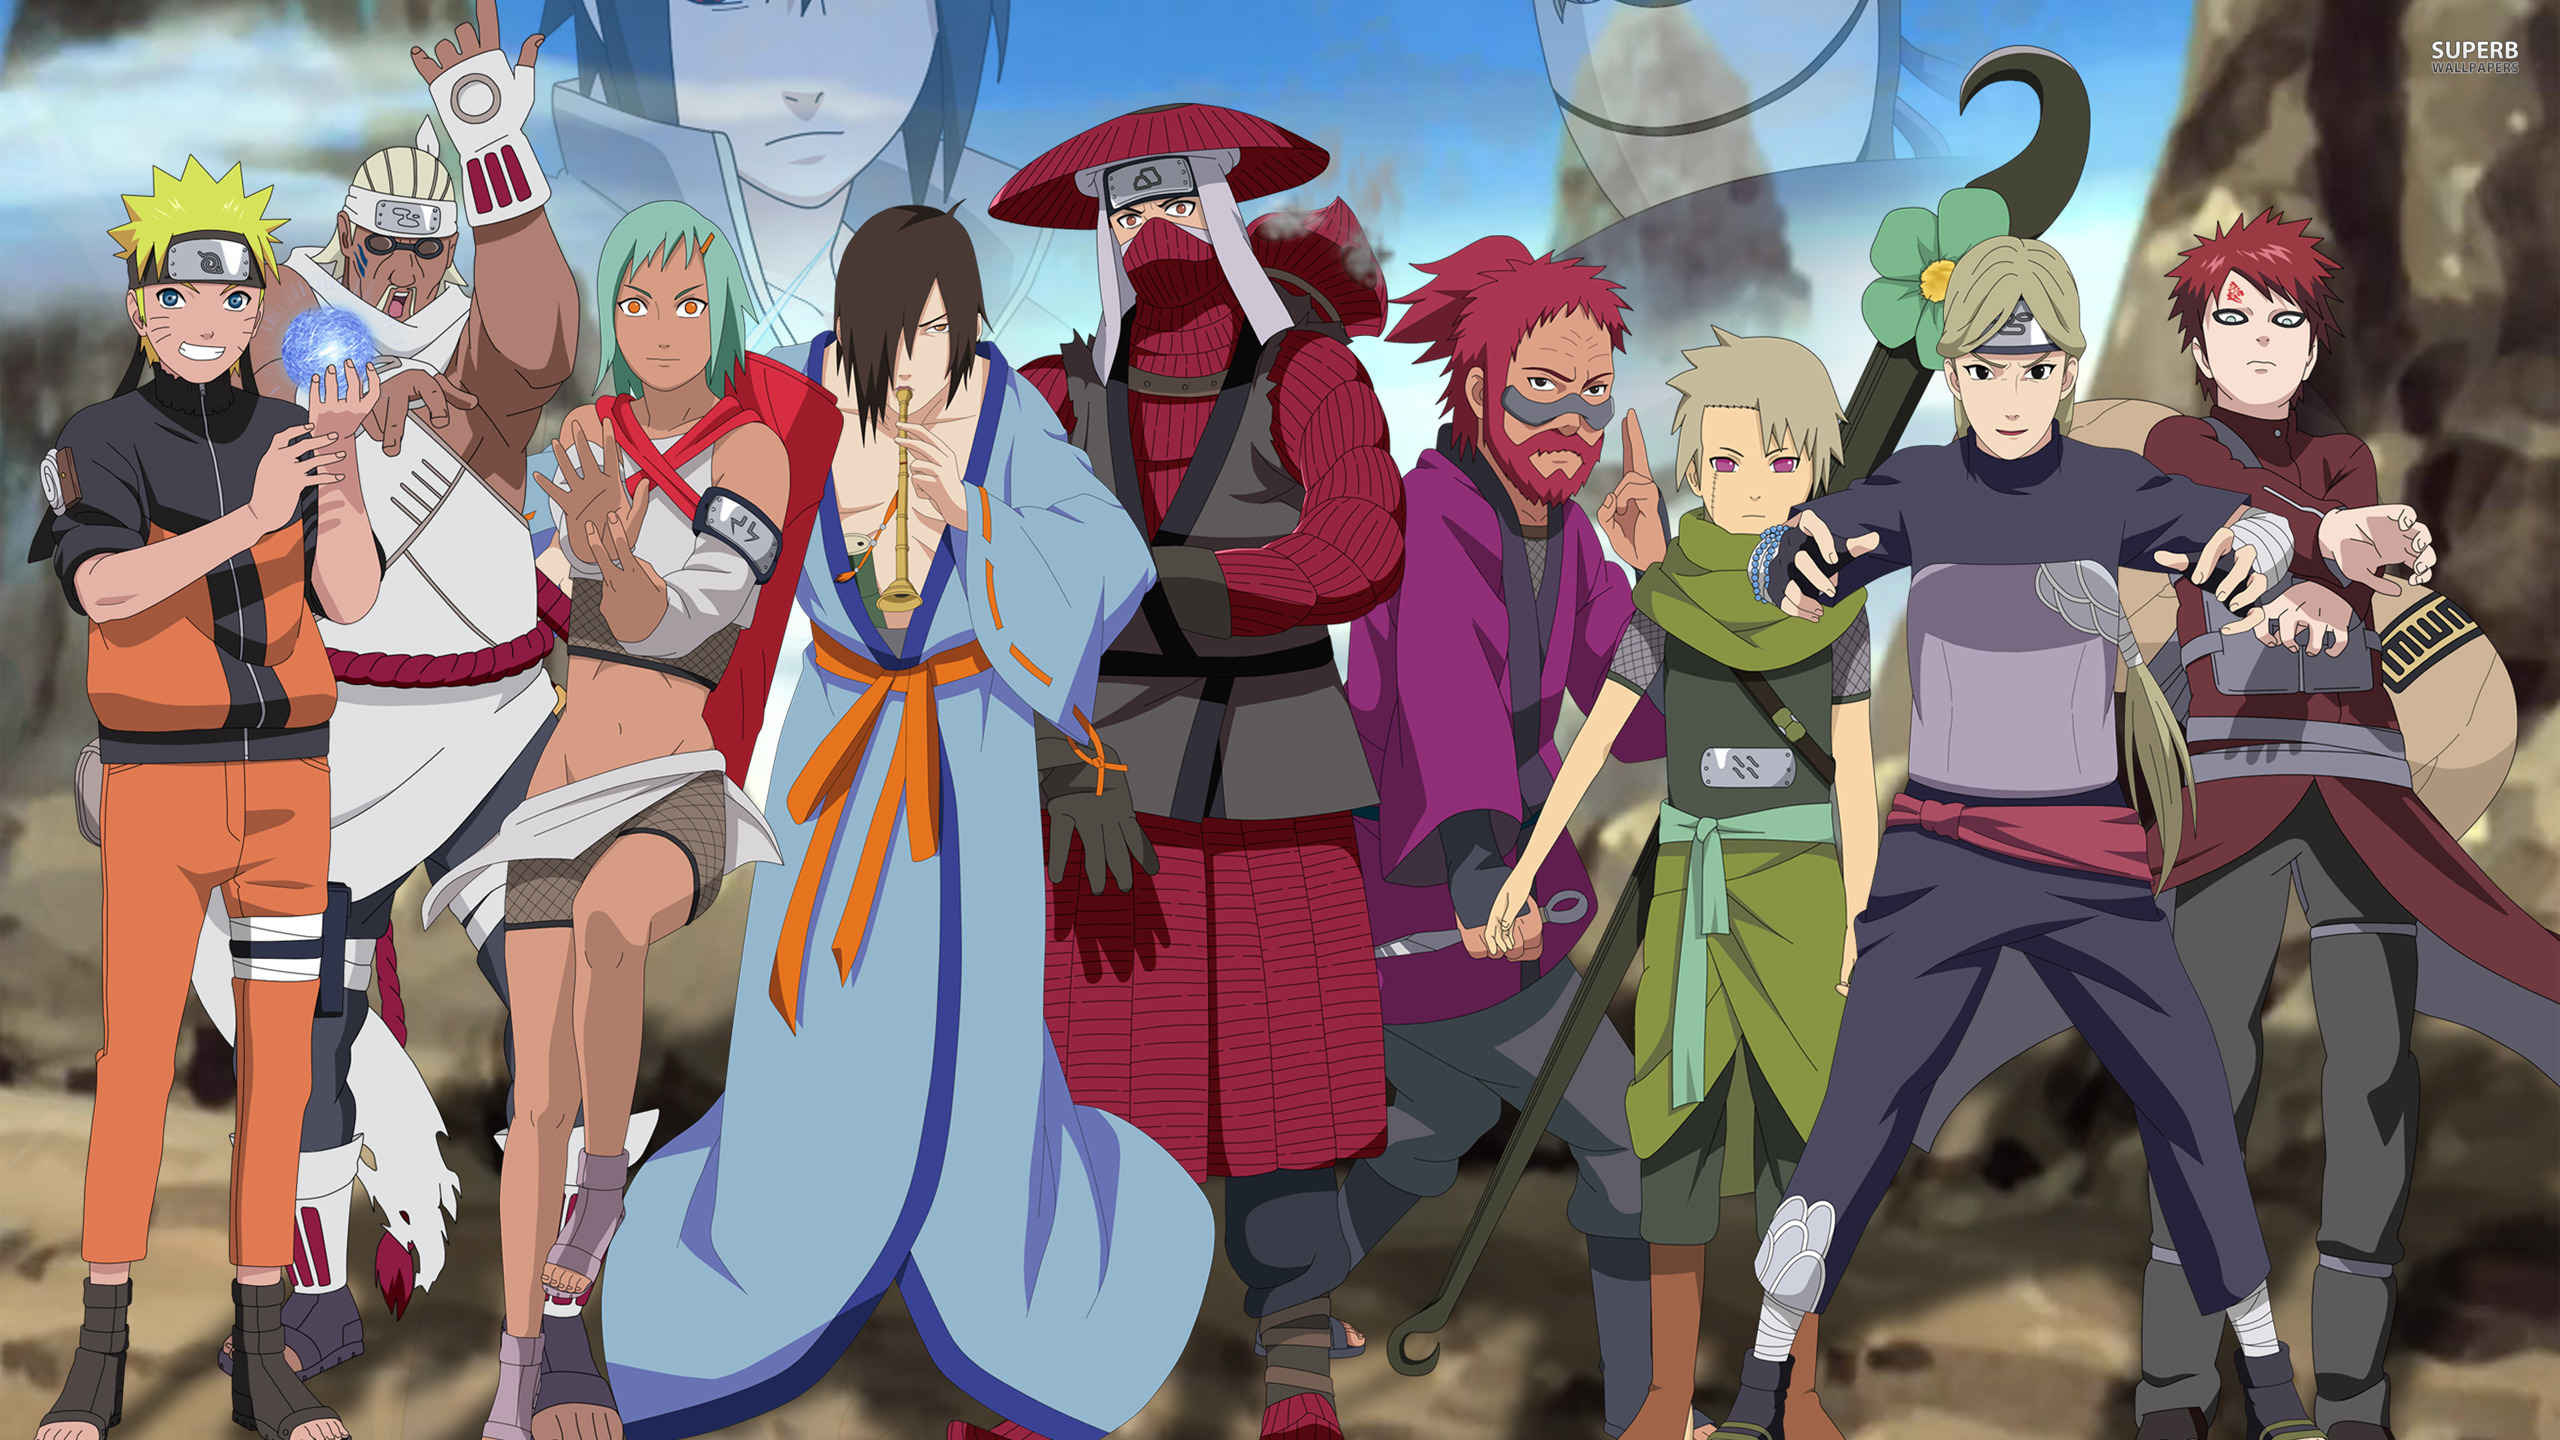 Naruto shippuden main characters wallpaper wallpaper download voltagebd Image collections